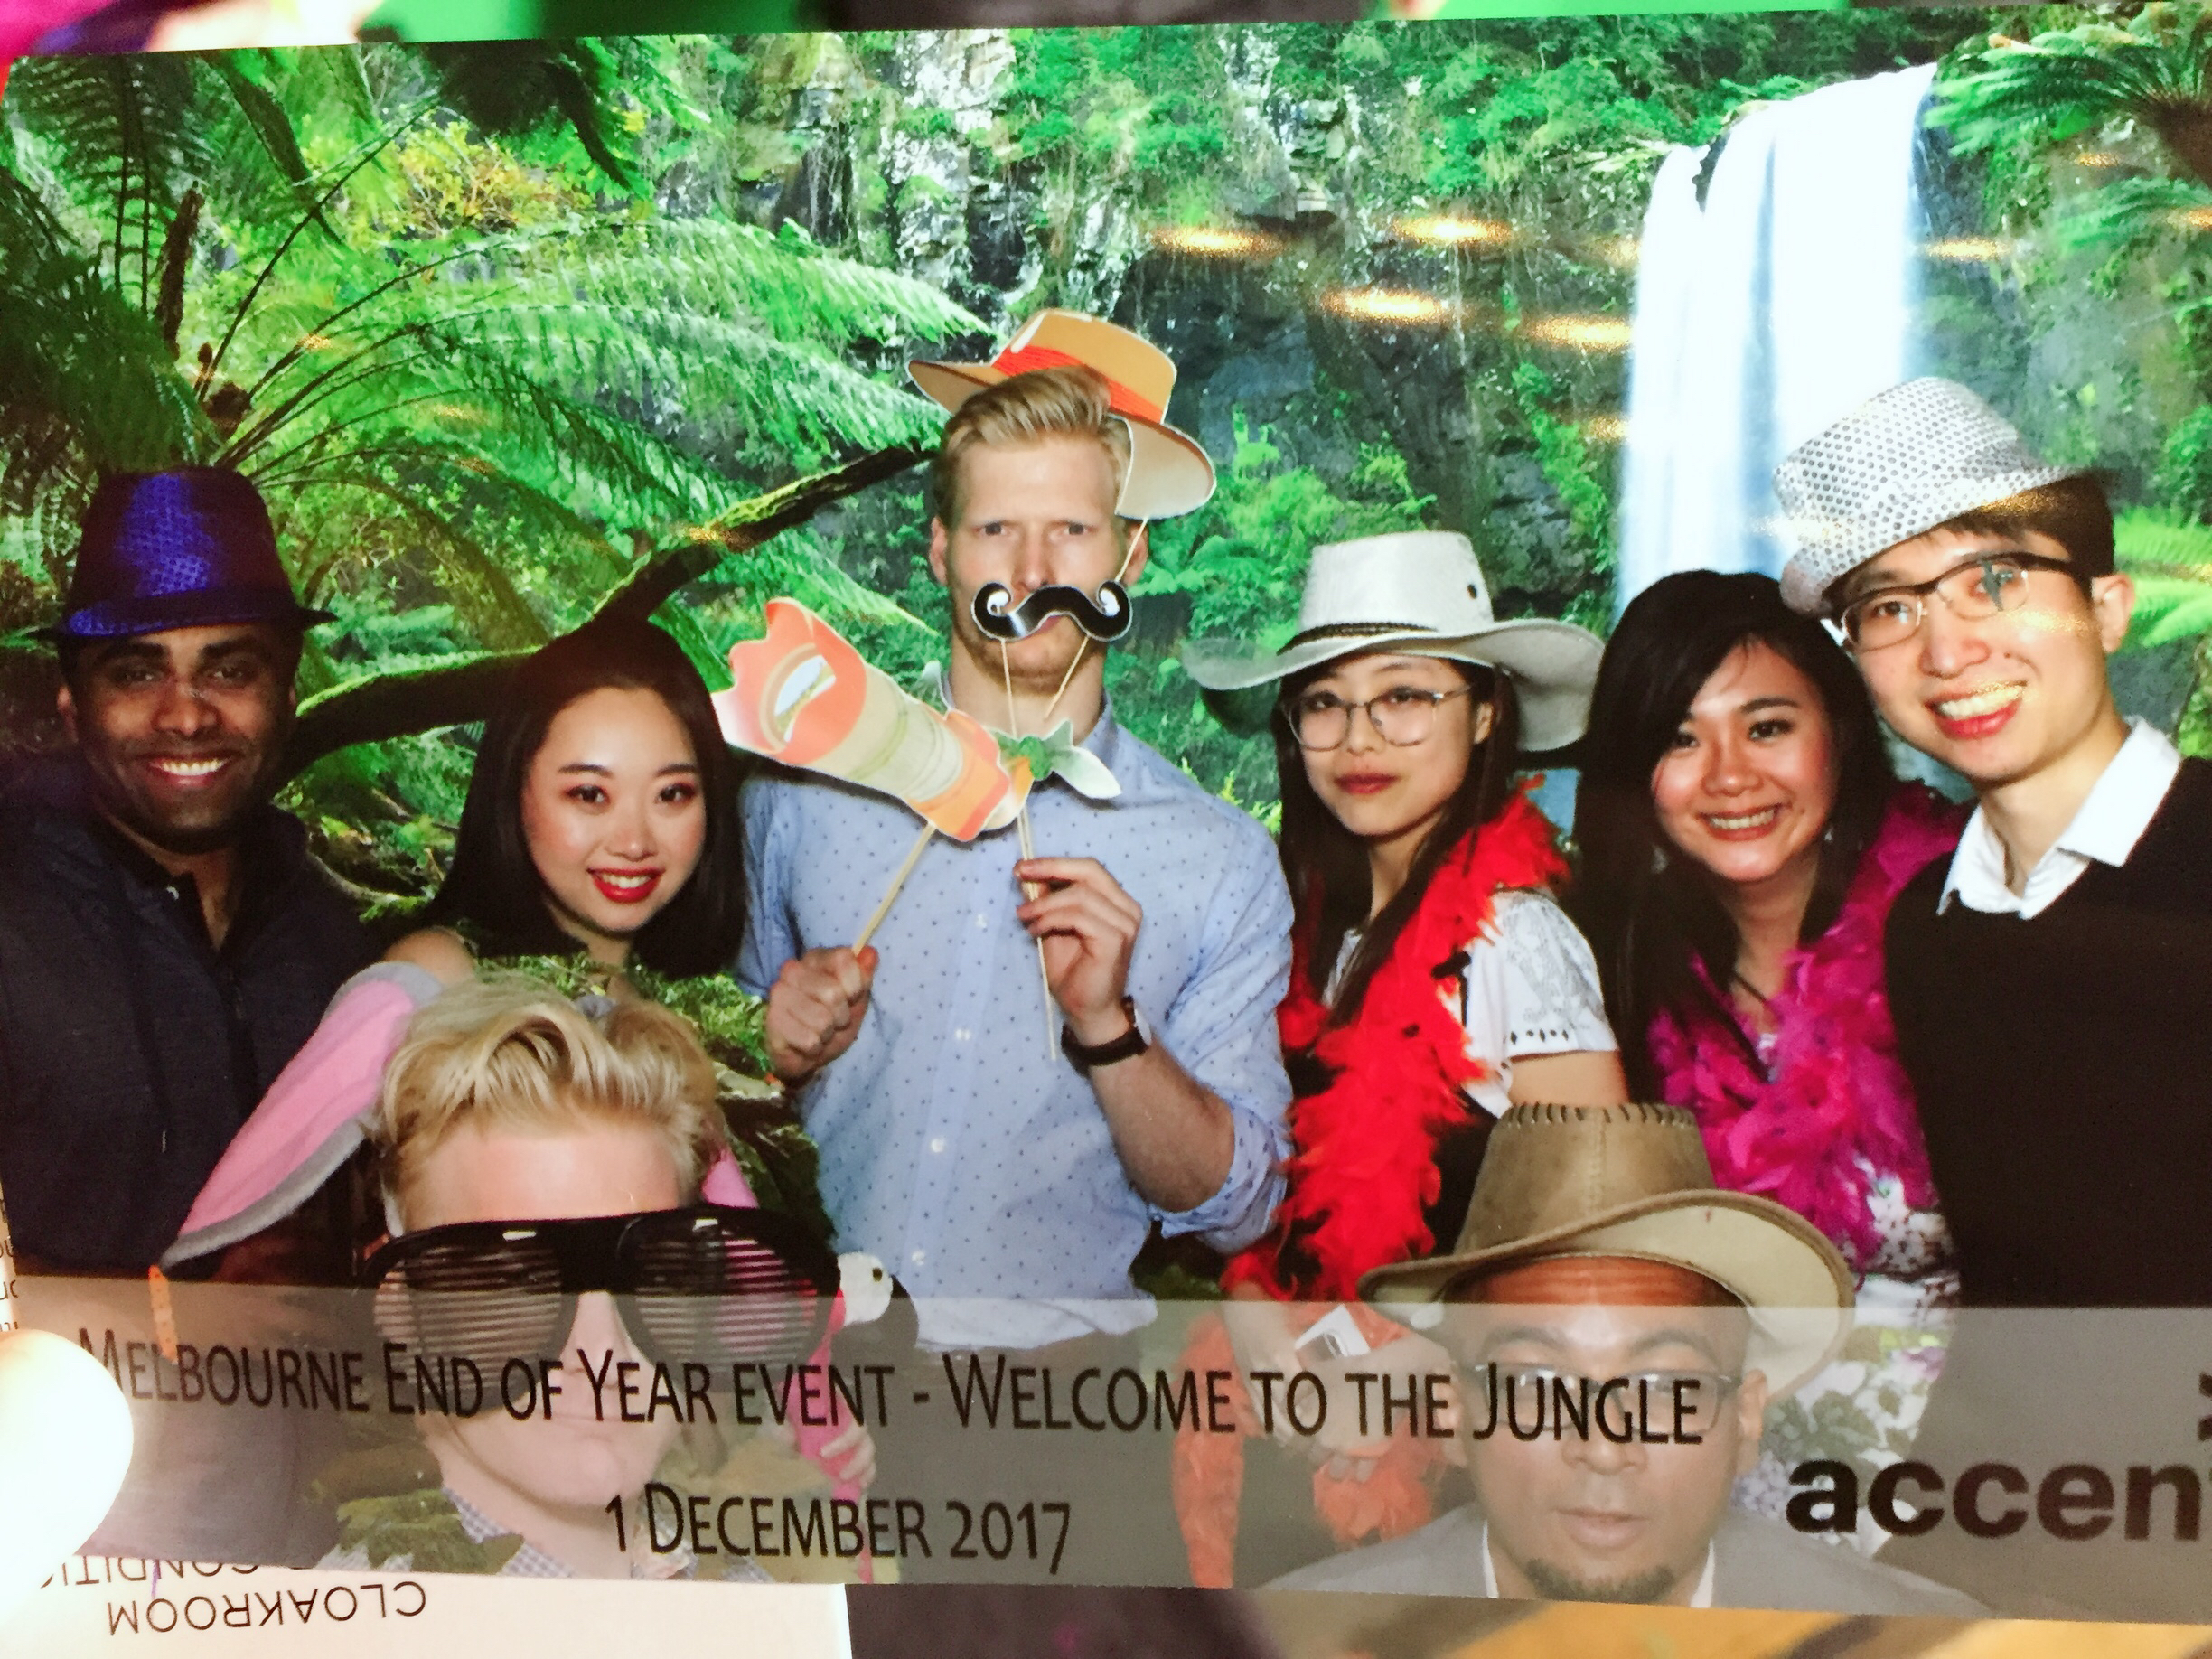 Accenture Year-End Party